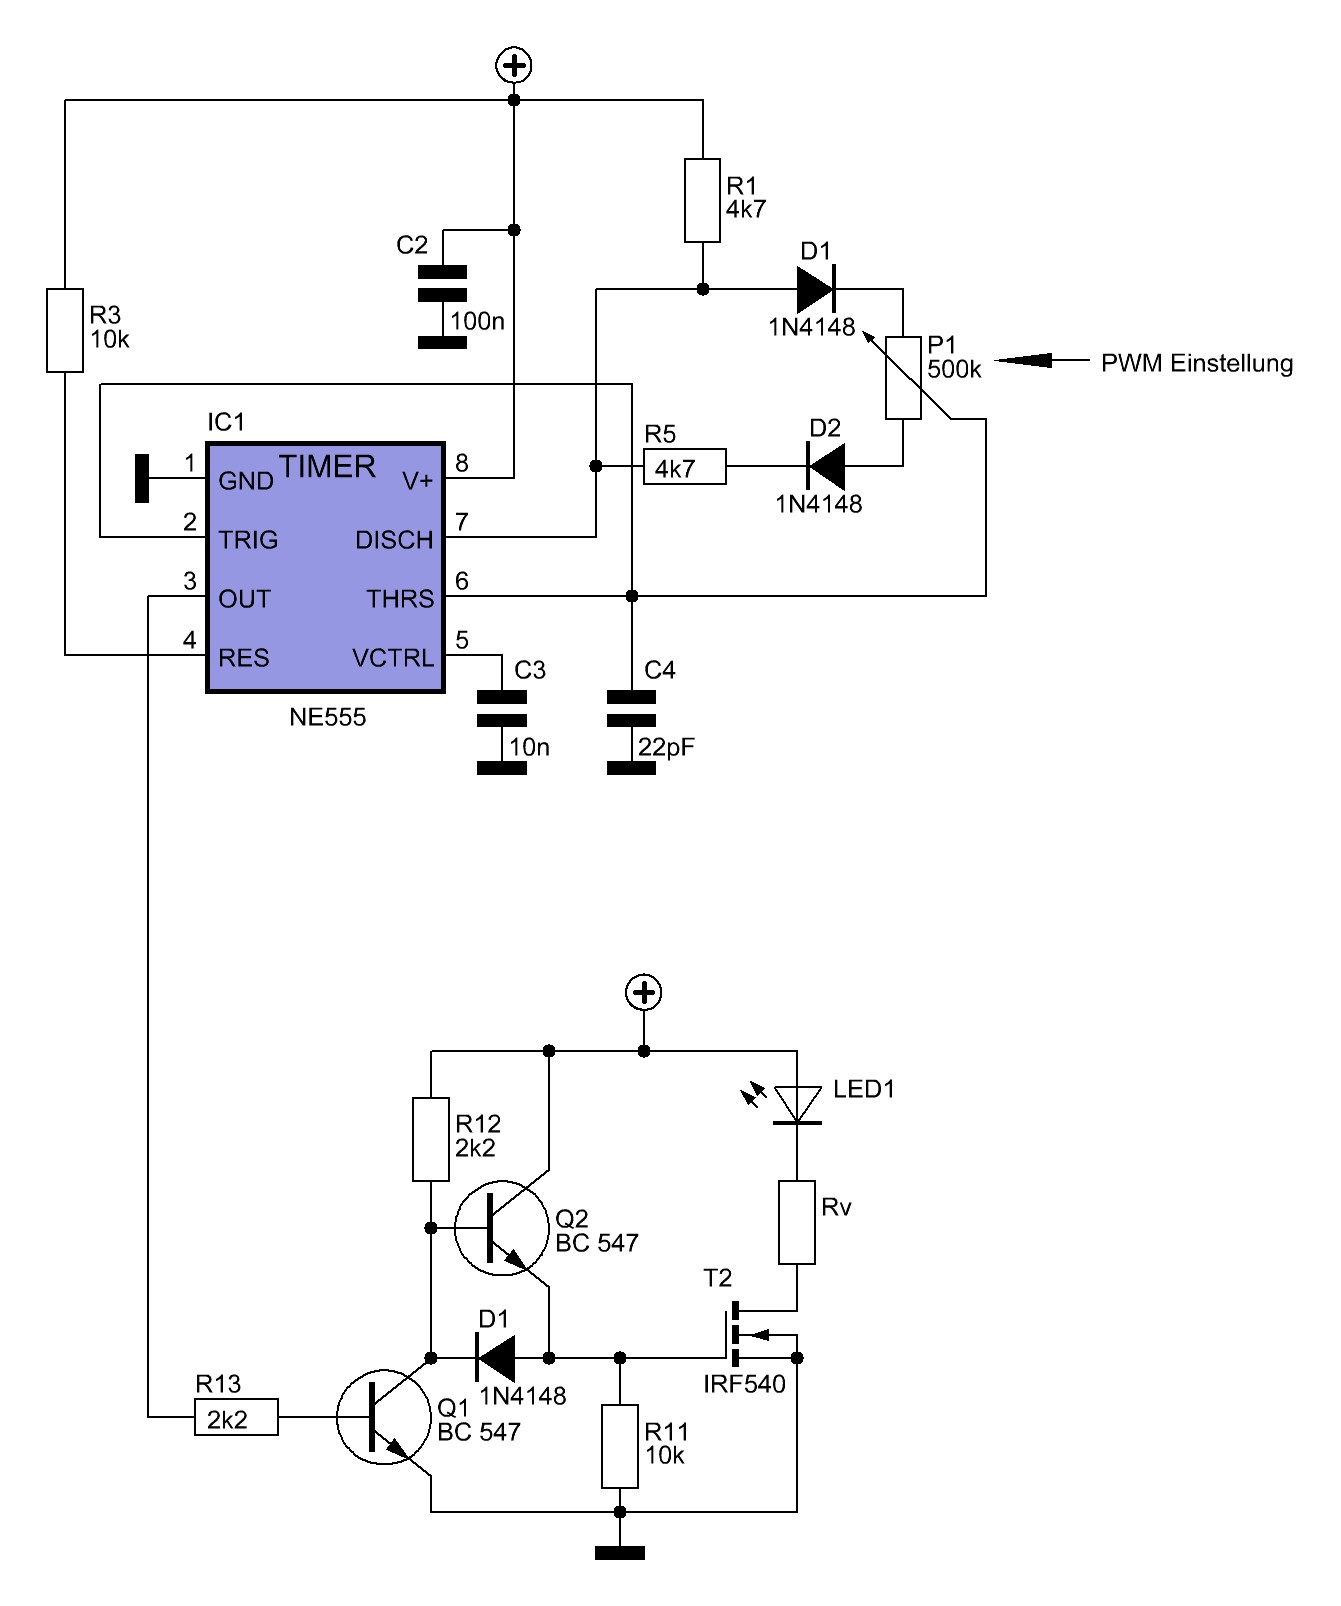 Ac Dc 110 Volt Motor Wiring Diagram furthermore 110 Volt Electric Motor Wiring Diagram furthermore Dayton Drum Switch 2x443a Wiring Diagram also 6kseh Ra 150 moreover Diagrams. on reversing drum switch diagram